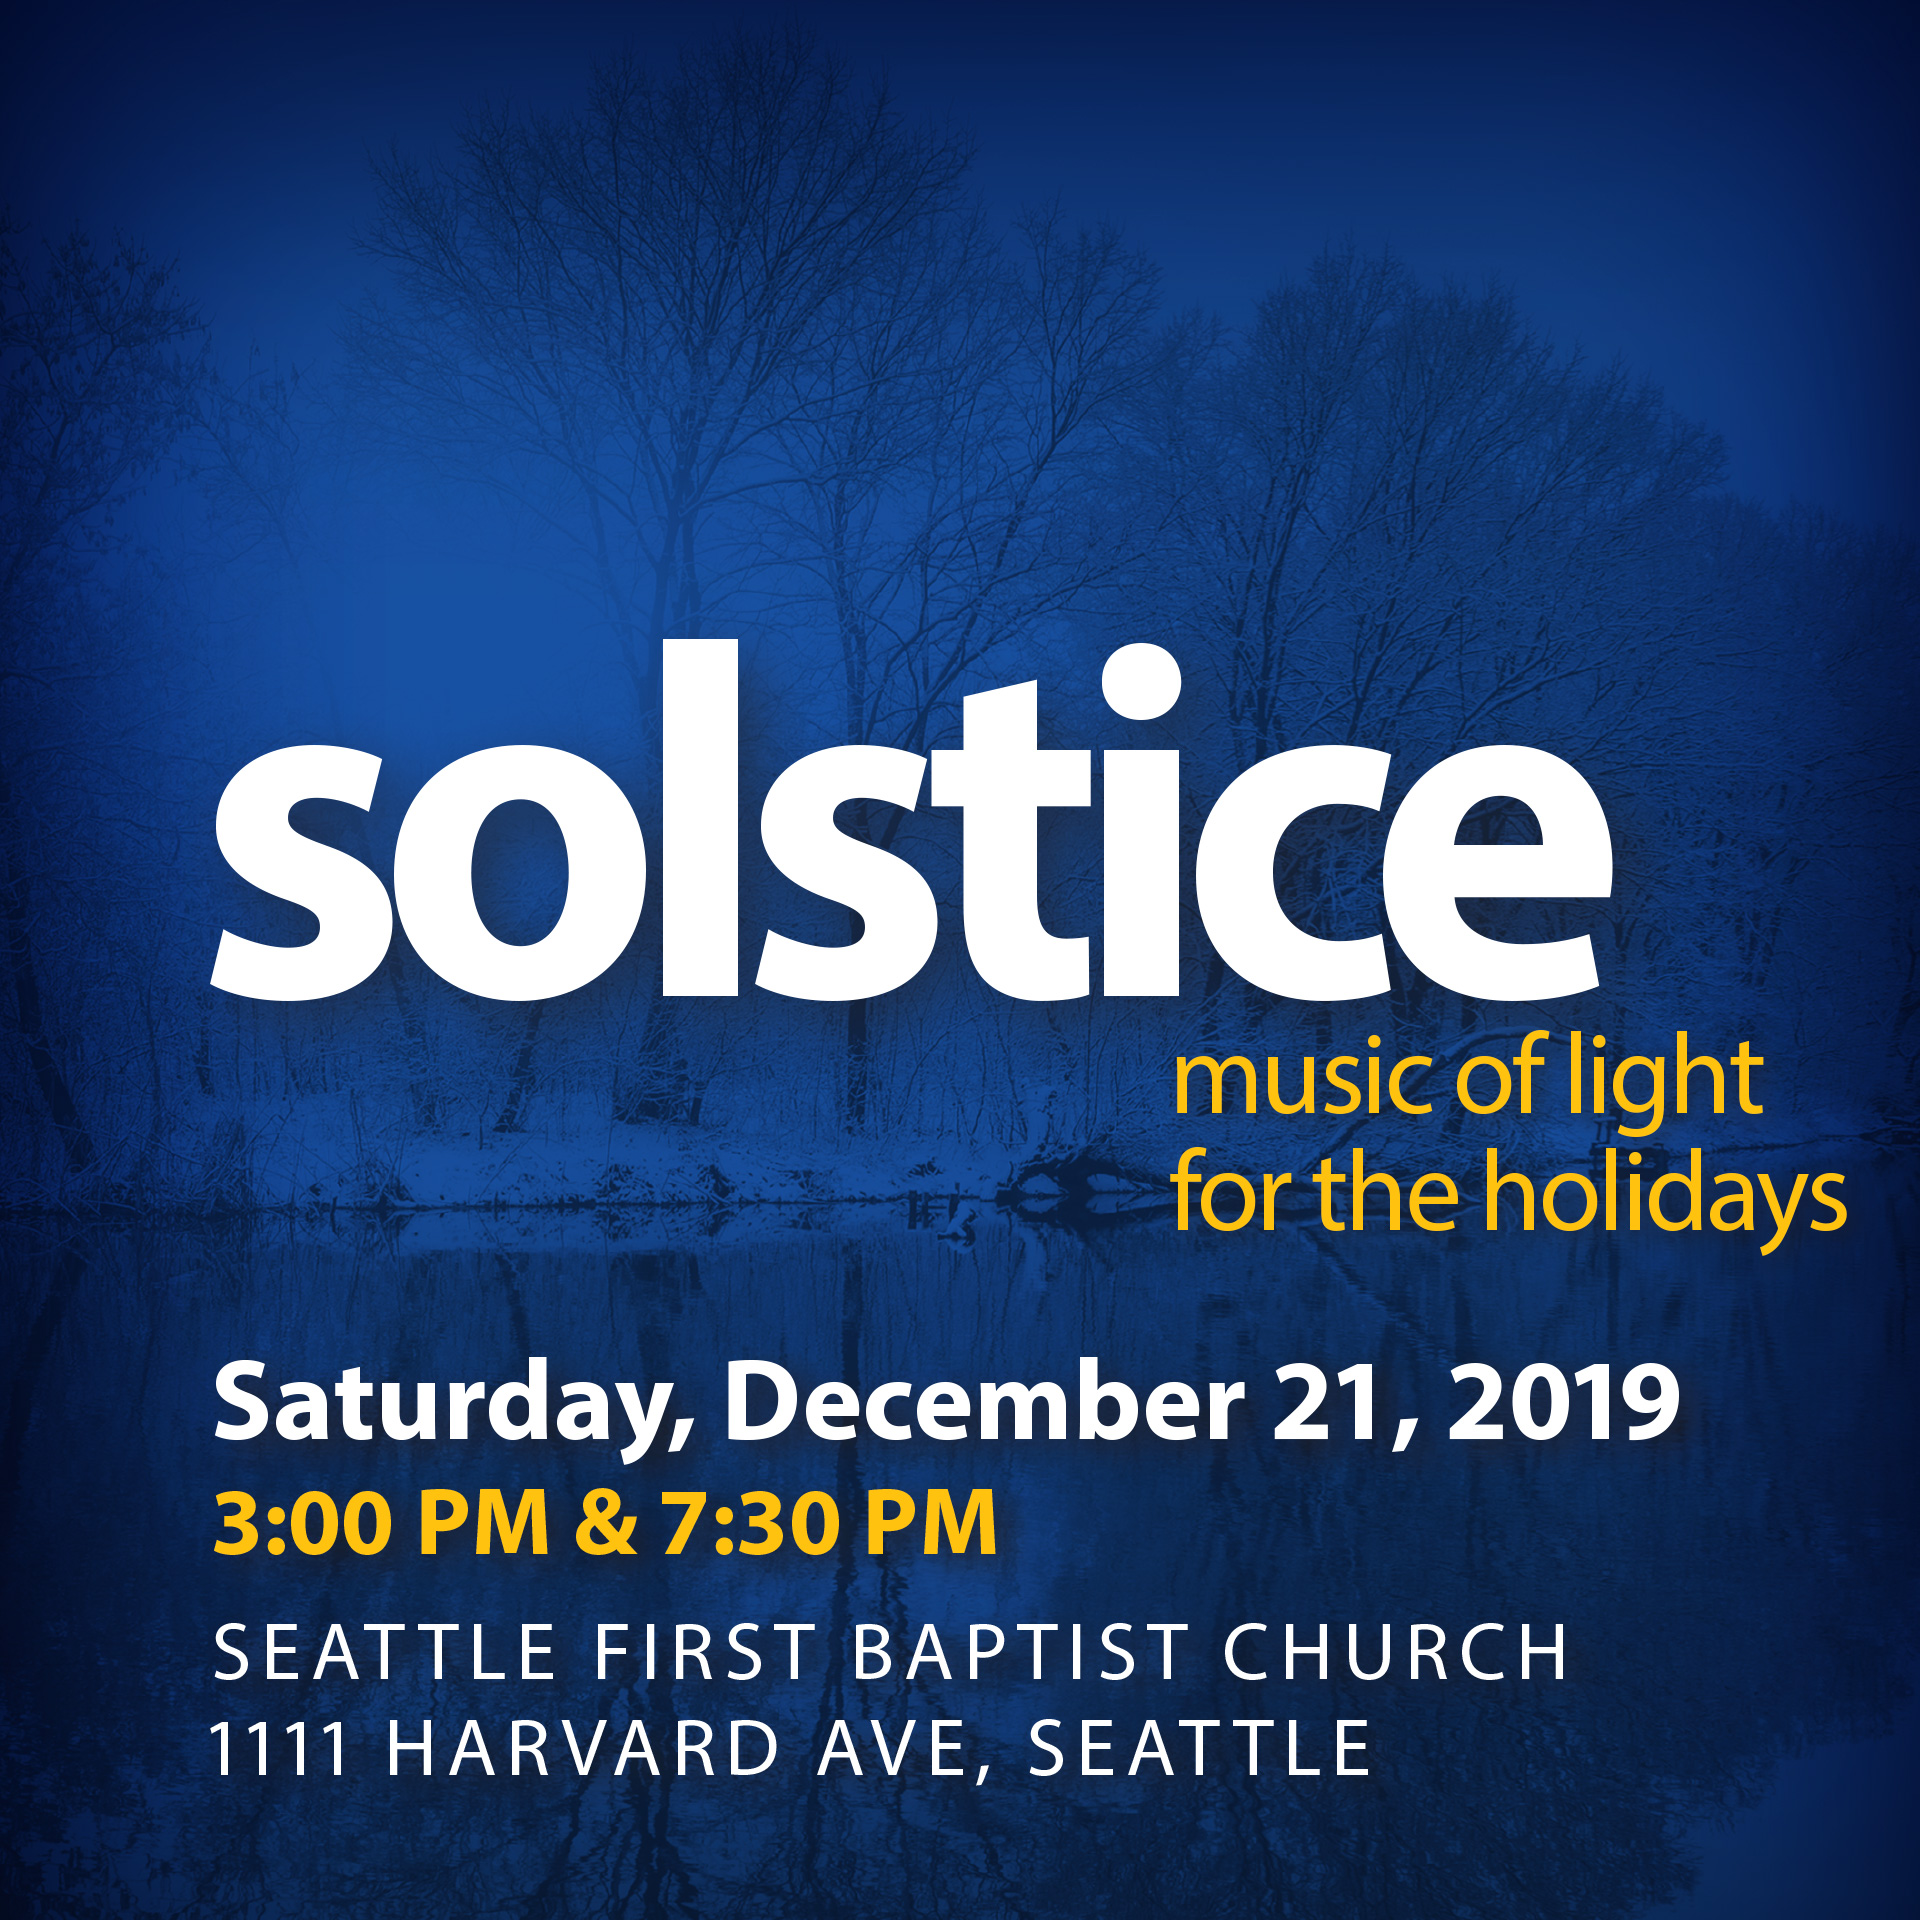 spm-2019-squarebox-solstice-dec-21.jpg